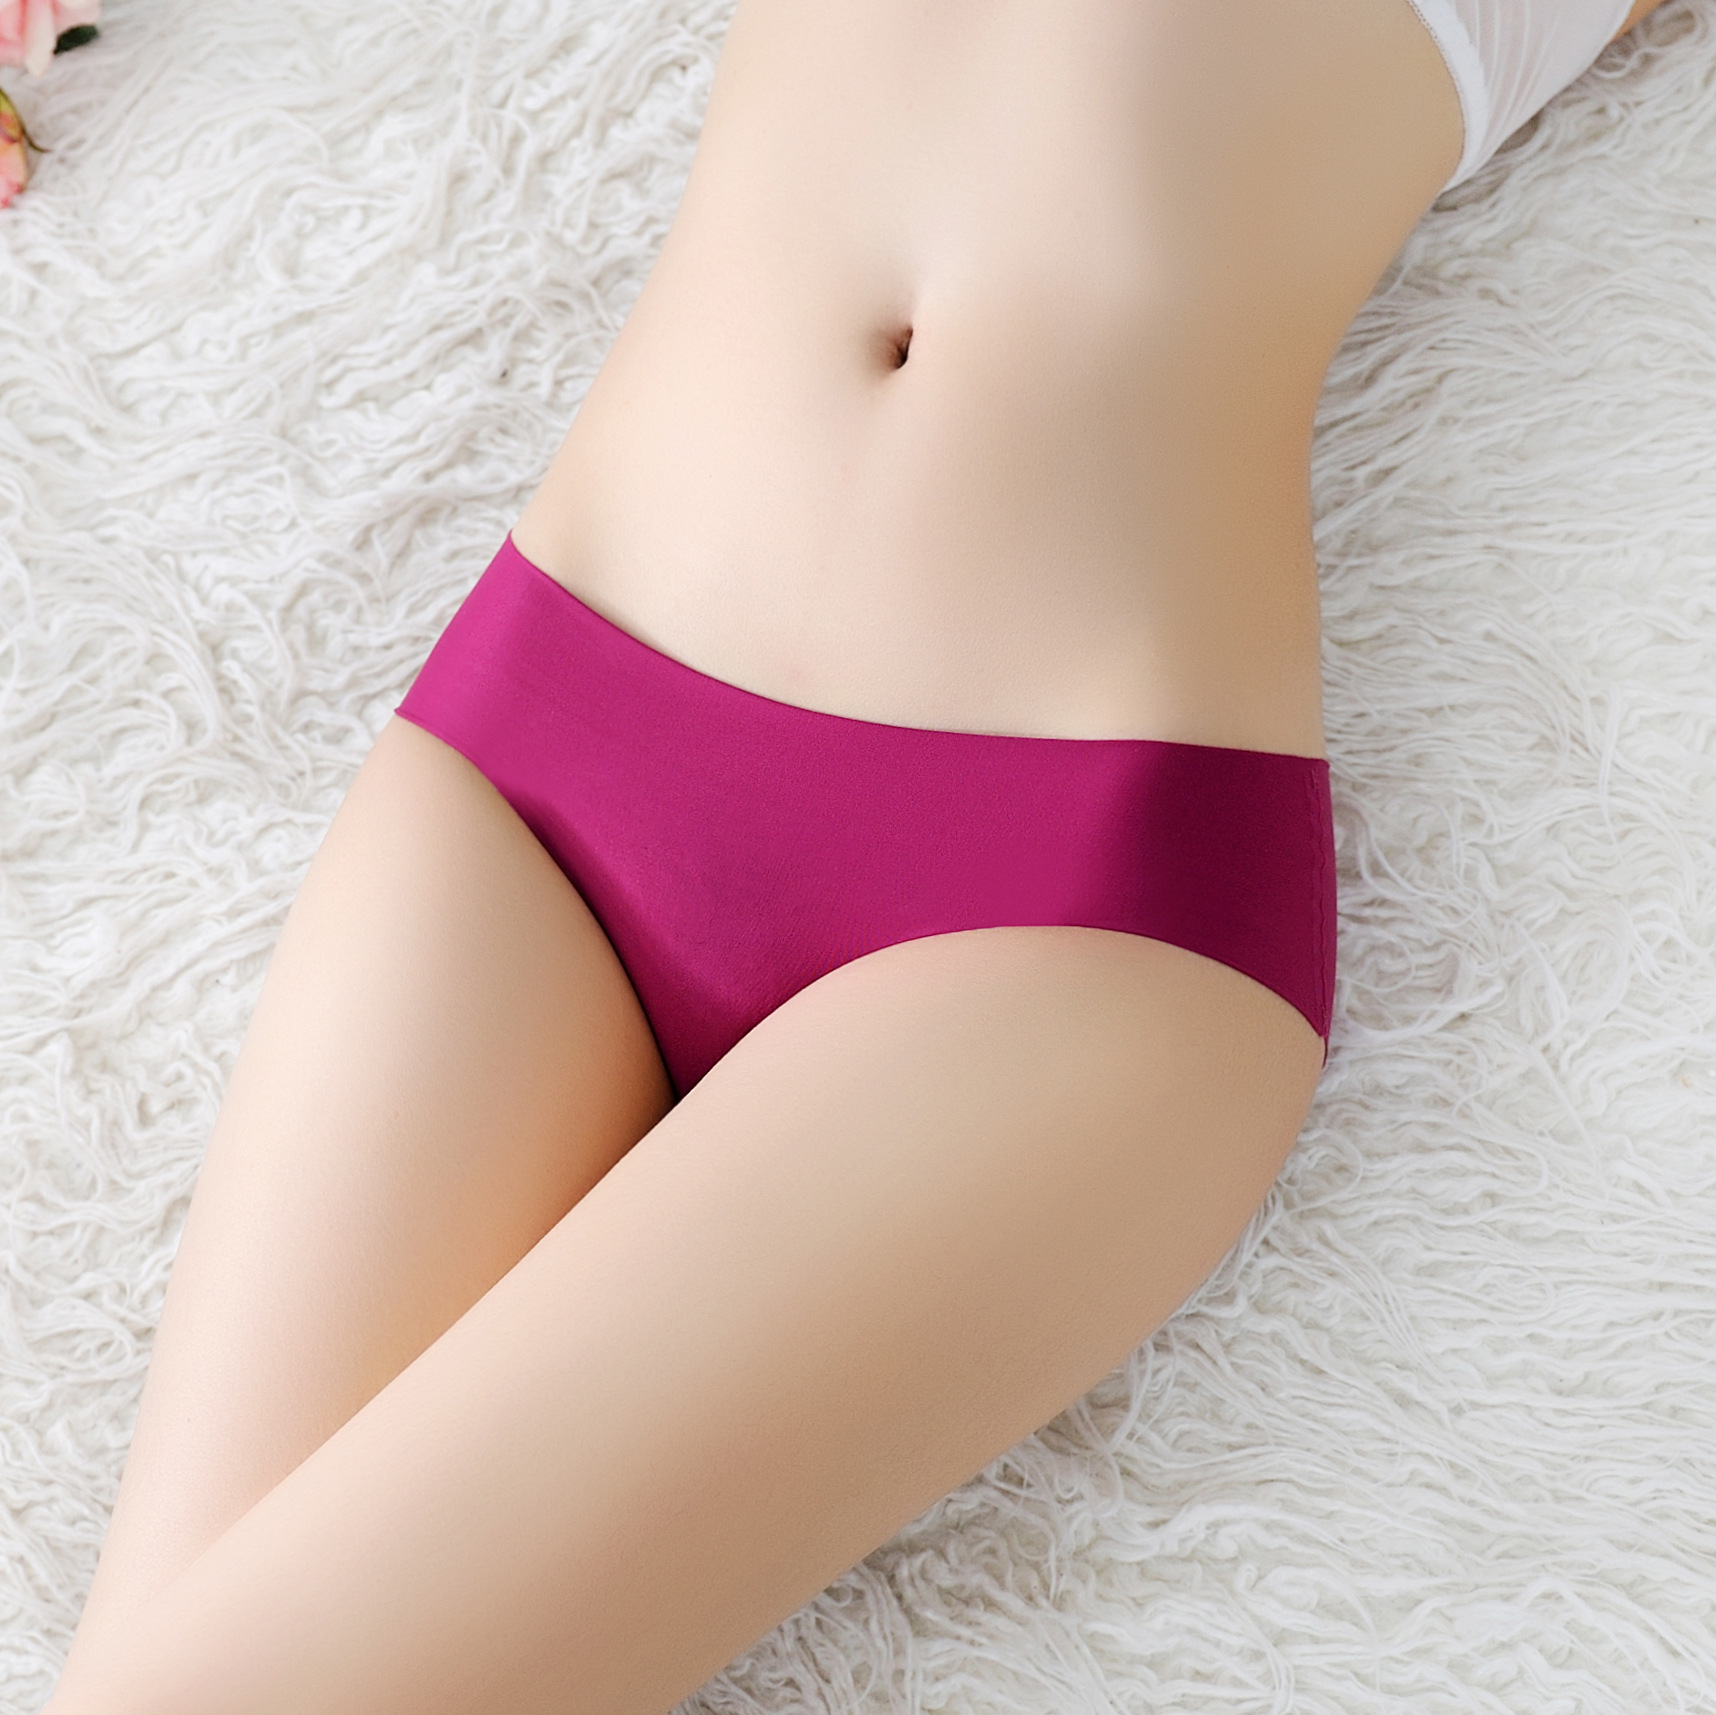 Low Waist Seamless Underwear Pink Women Female Solid Ladies Panties Lingerie Sexy Seamless Panties Women Silk Intimates Briefs